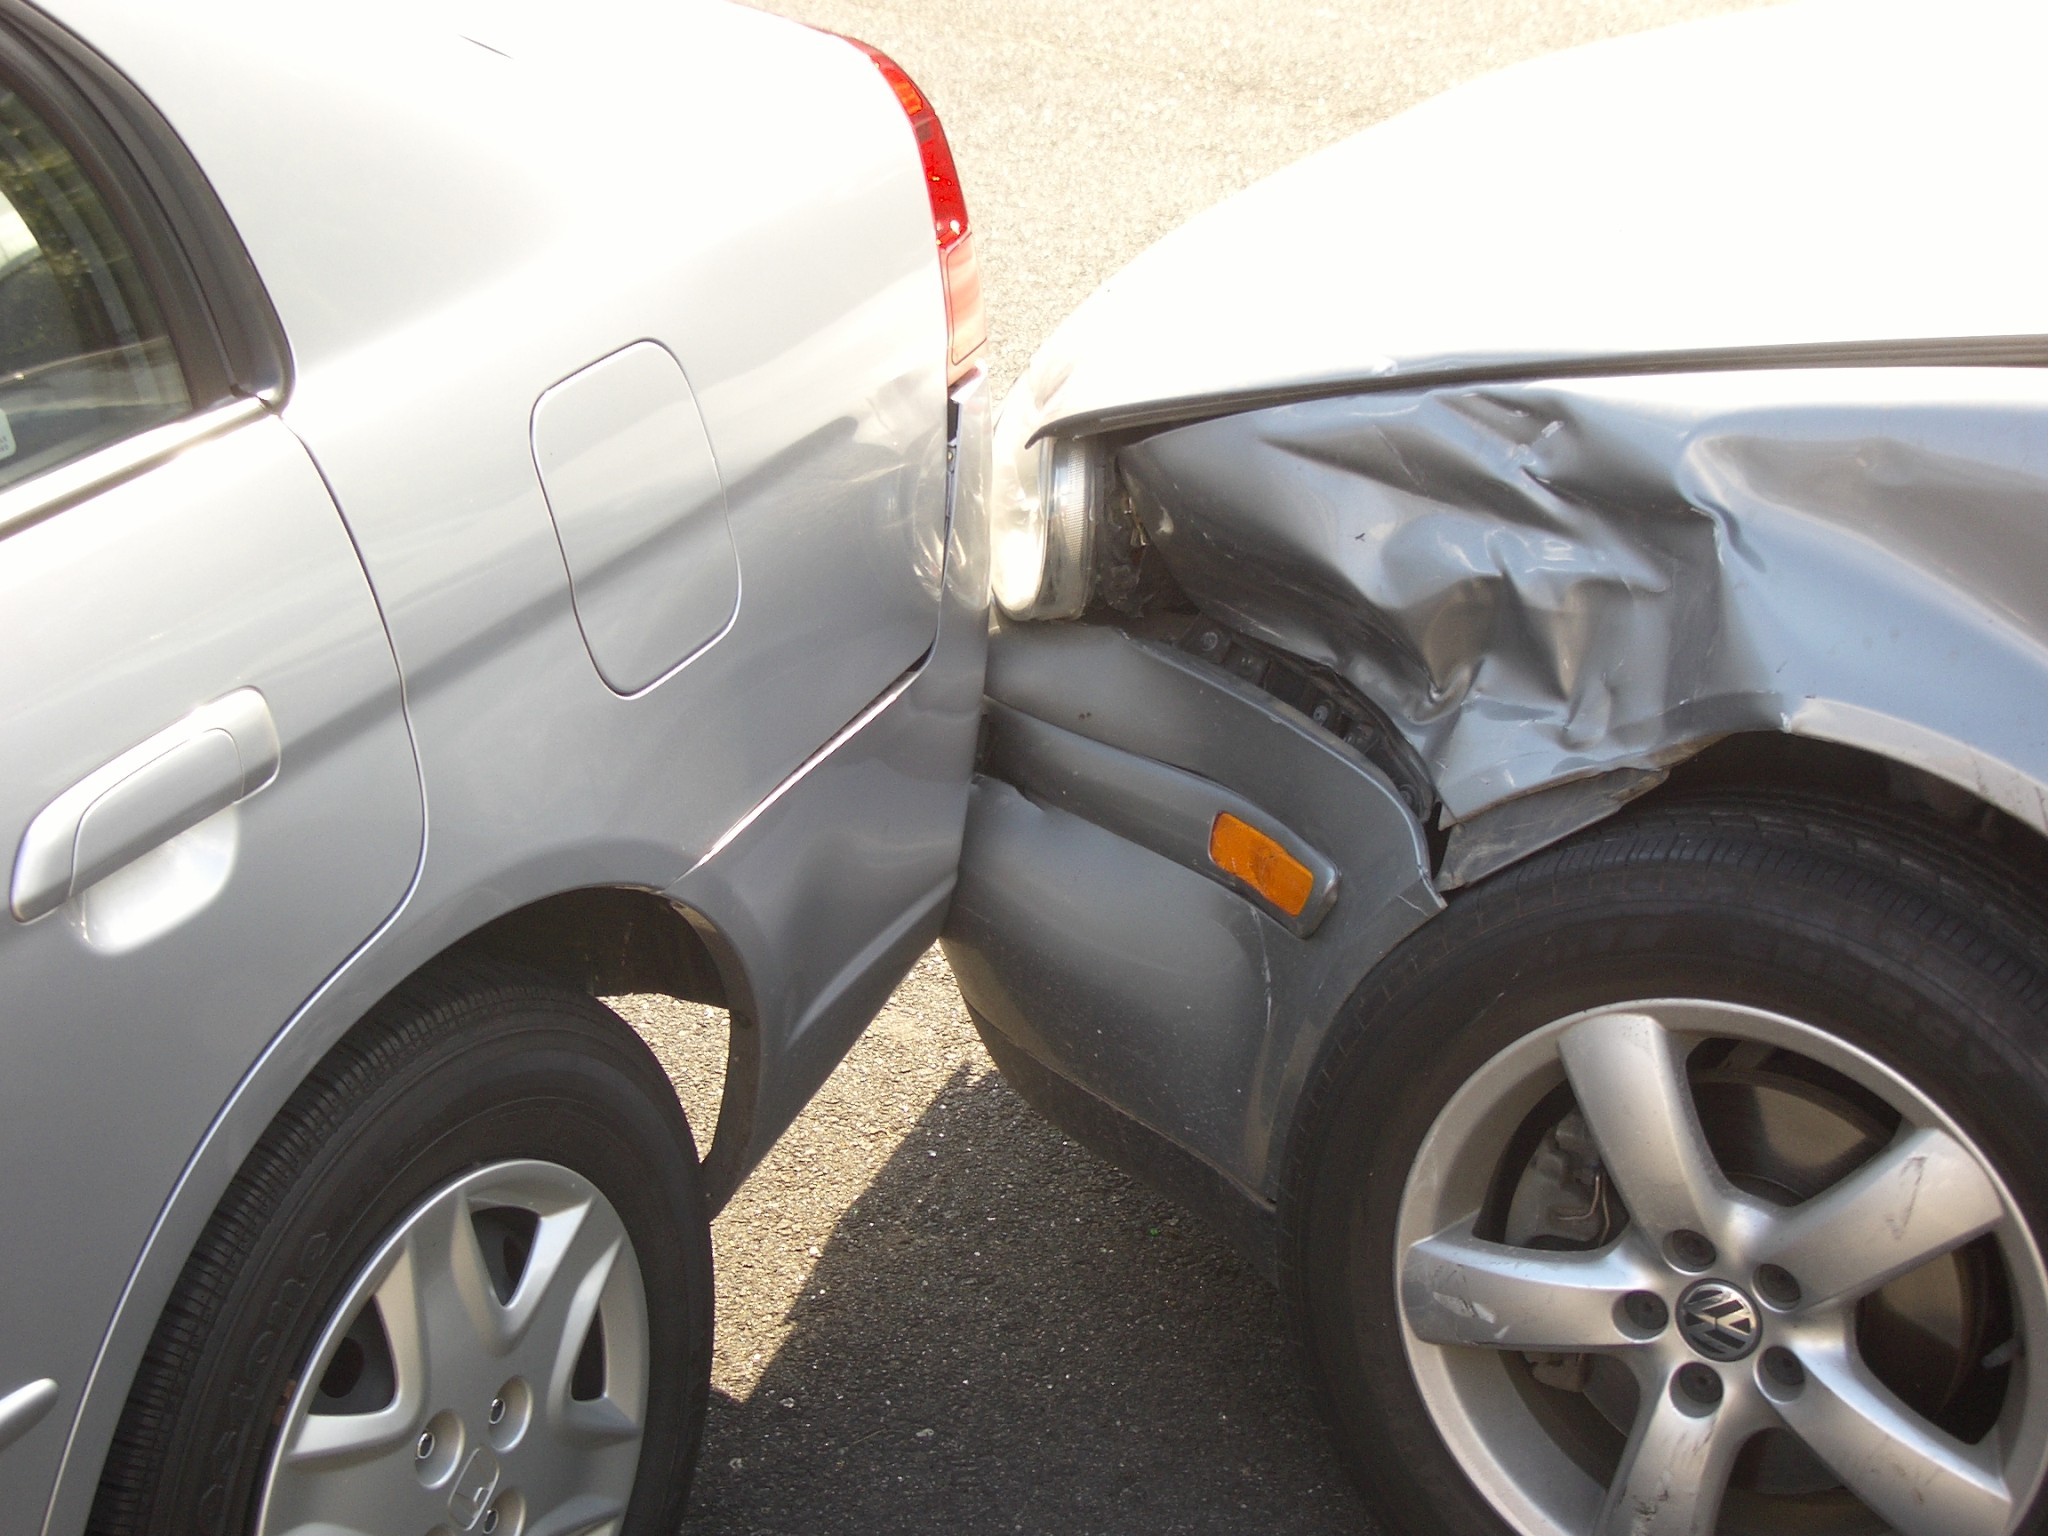 Auto Body Repair and Collision Repair, Scituate MA, Cohasset MA, Hingham MA, Norwell MA